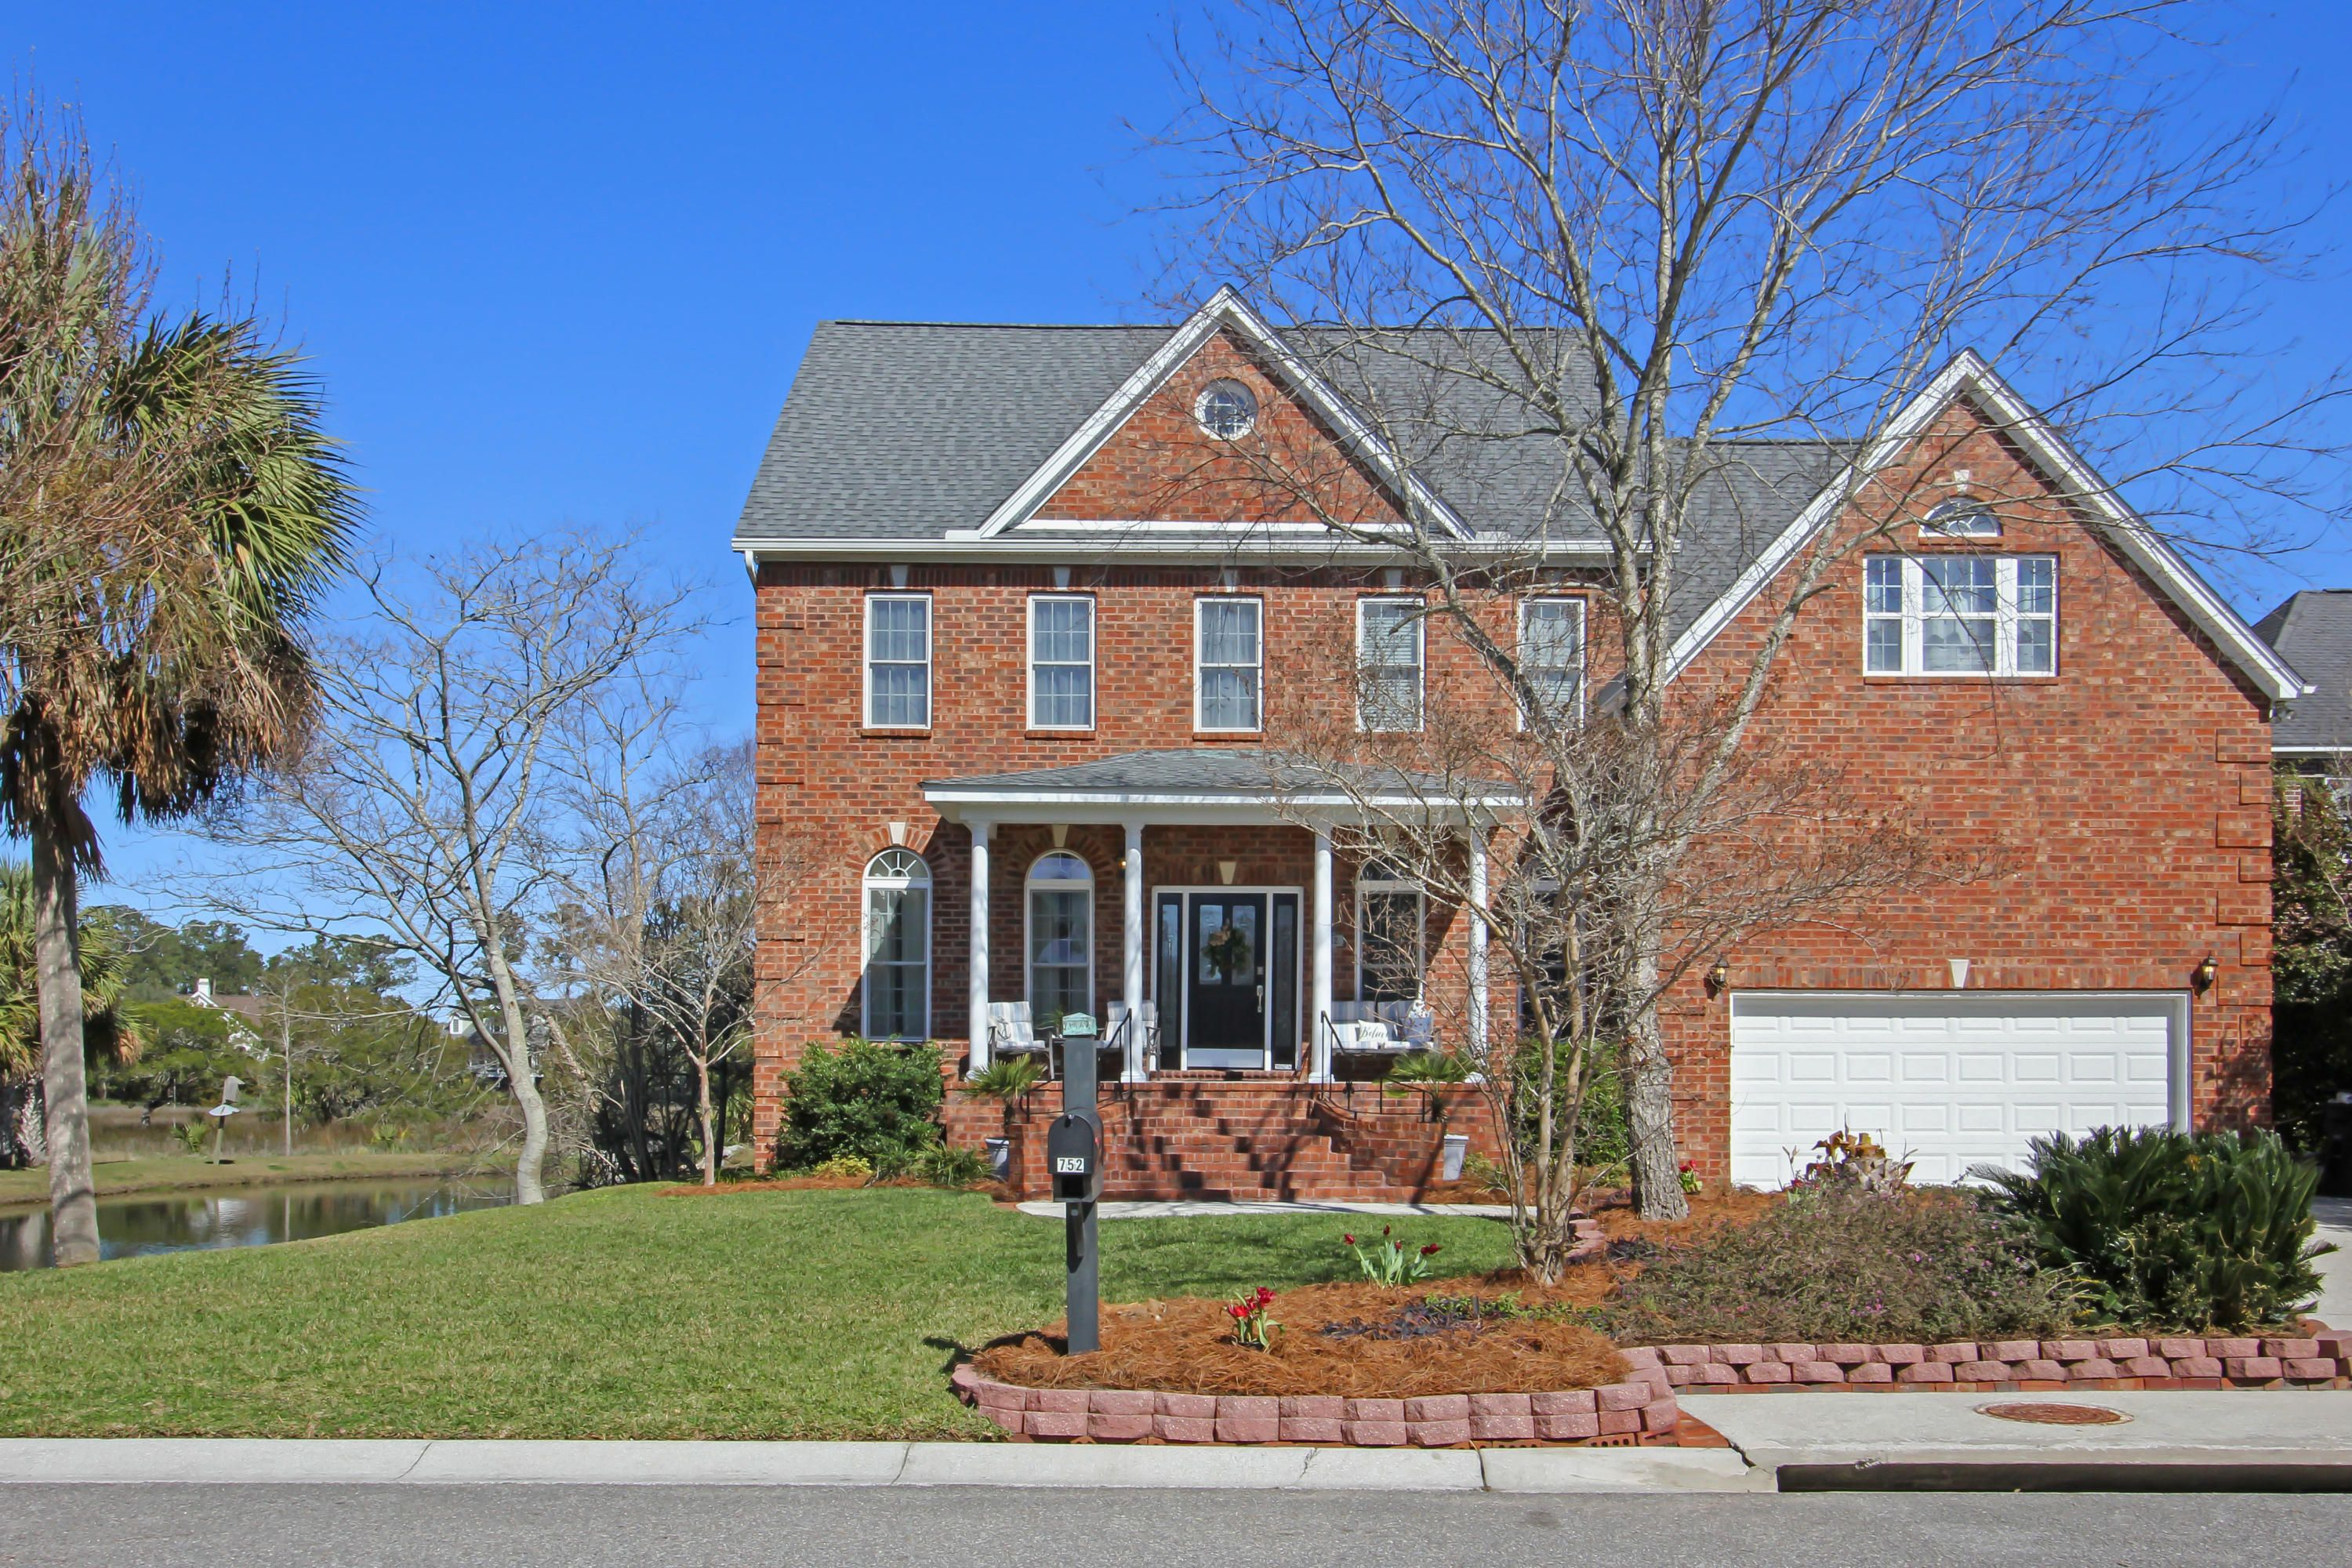 Stately all brick home situated next to a pond with